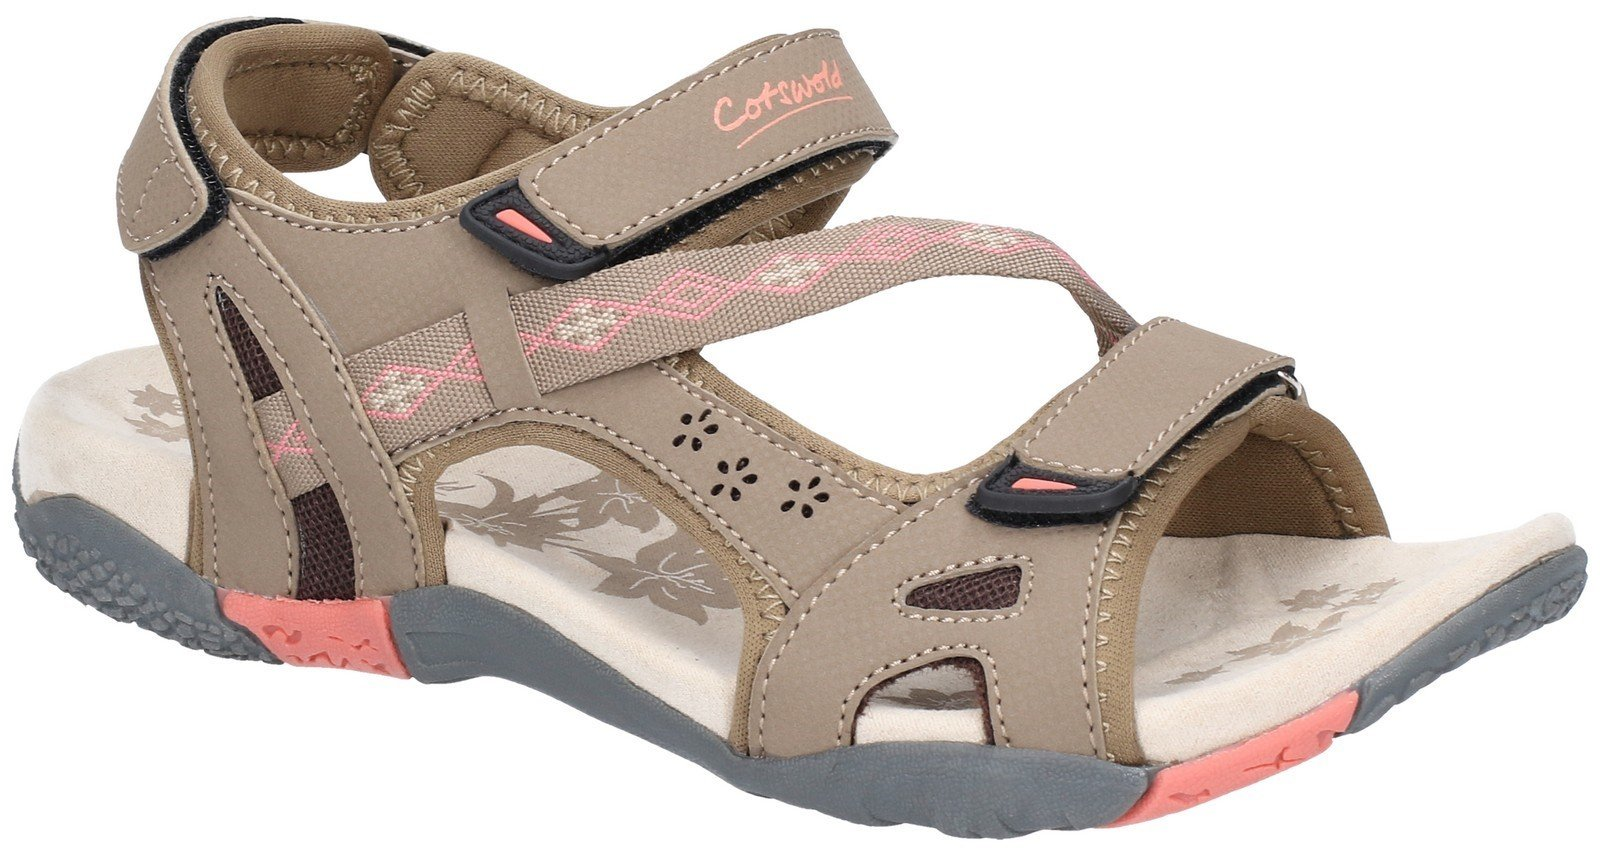 Cotswold Women's Whichford Touch Fasten Sandal Various Colours 28233 - Taupe/Pink 3